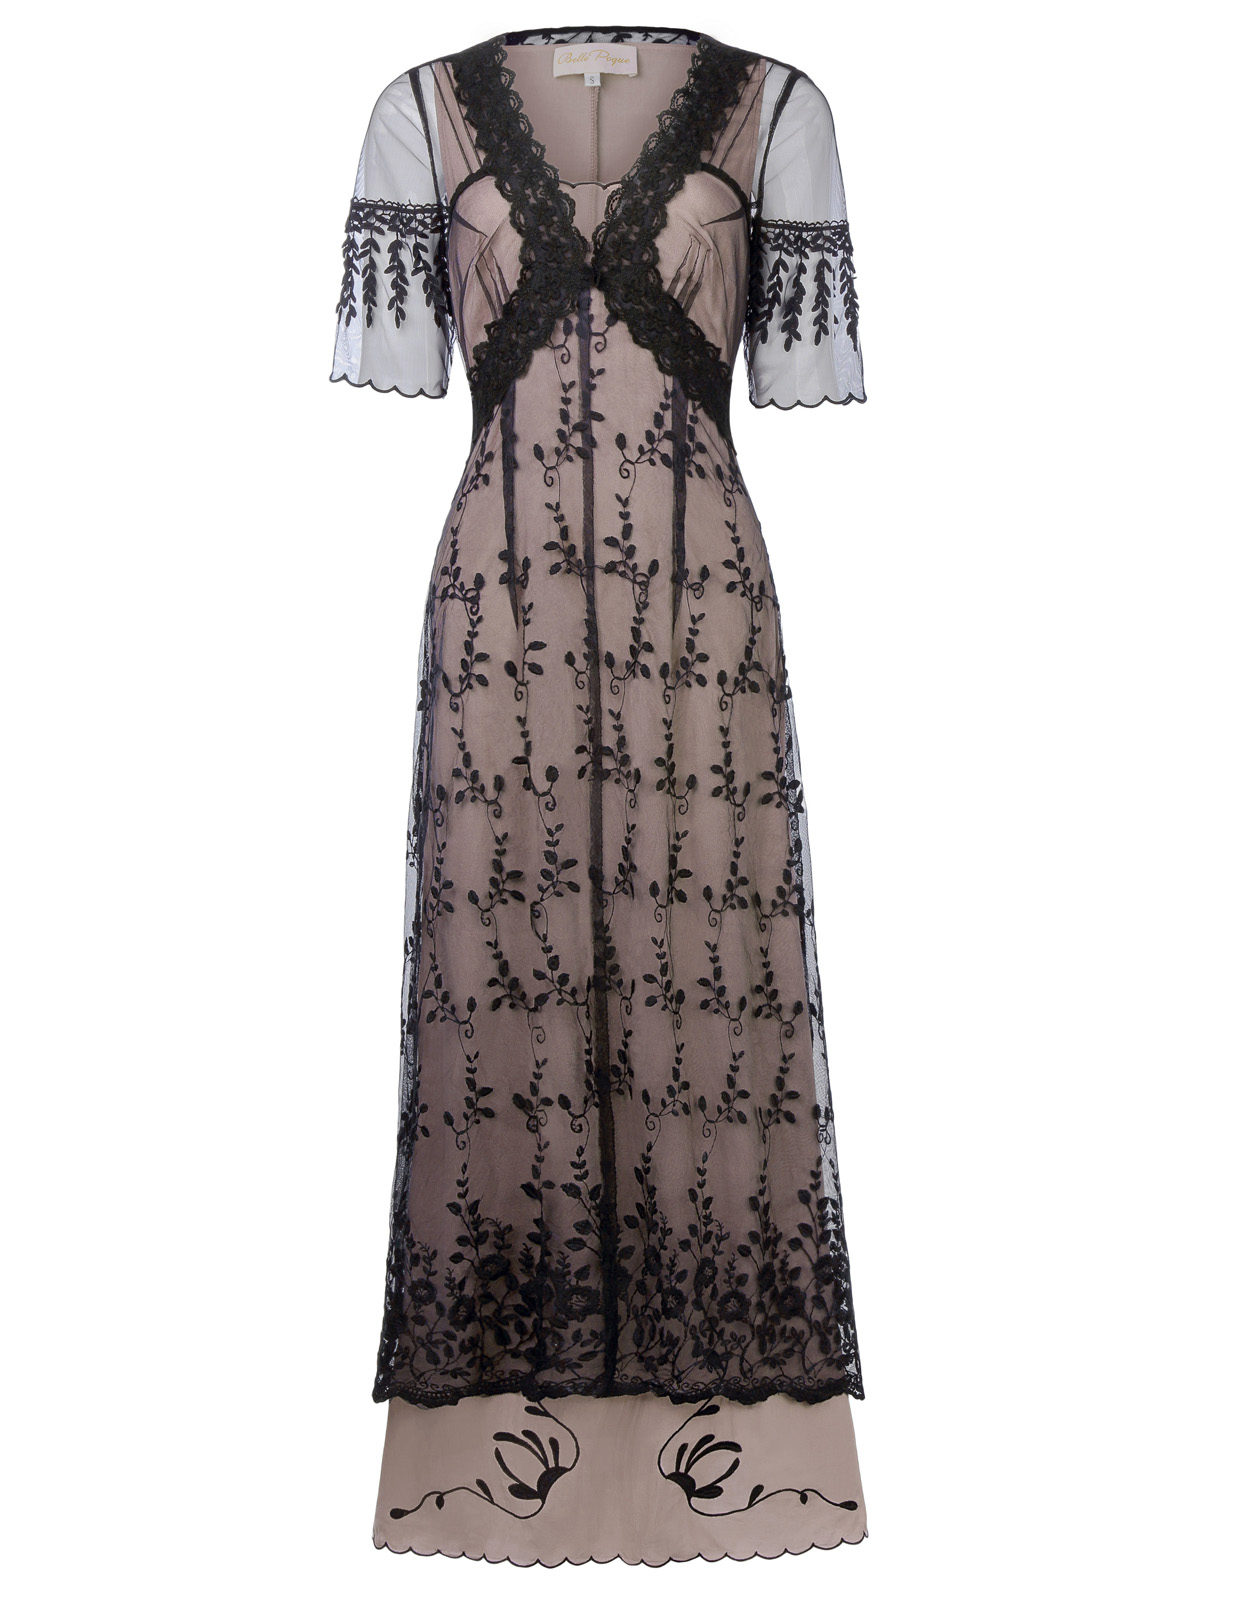 Lolita floral Embroidery Mesh ankle length ladies dress Sexy Women Retro Vintage Victorian Style Half Sleeve V-Neck Lace Dresses 3